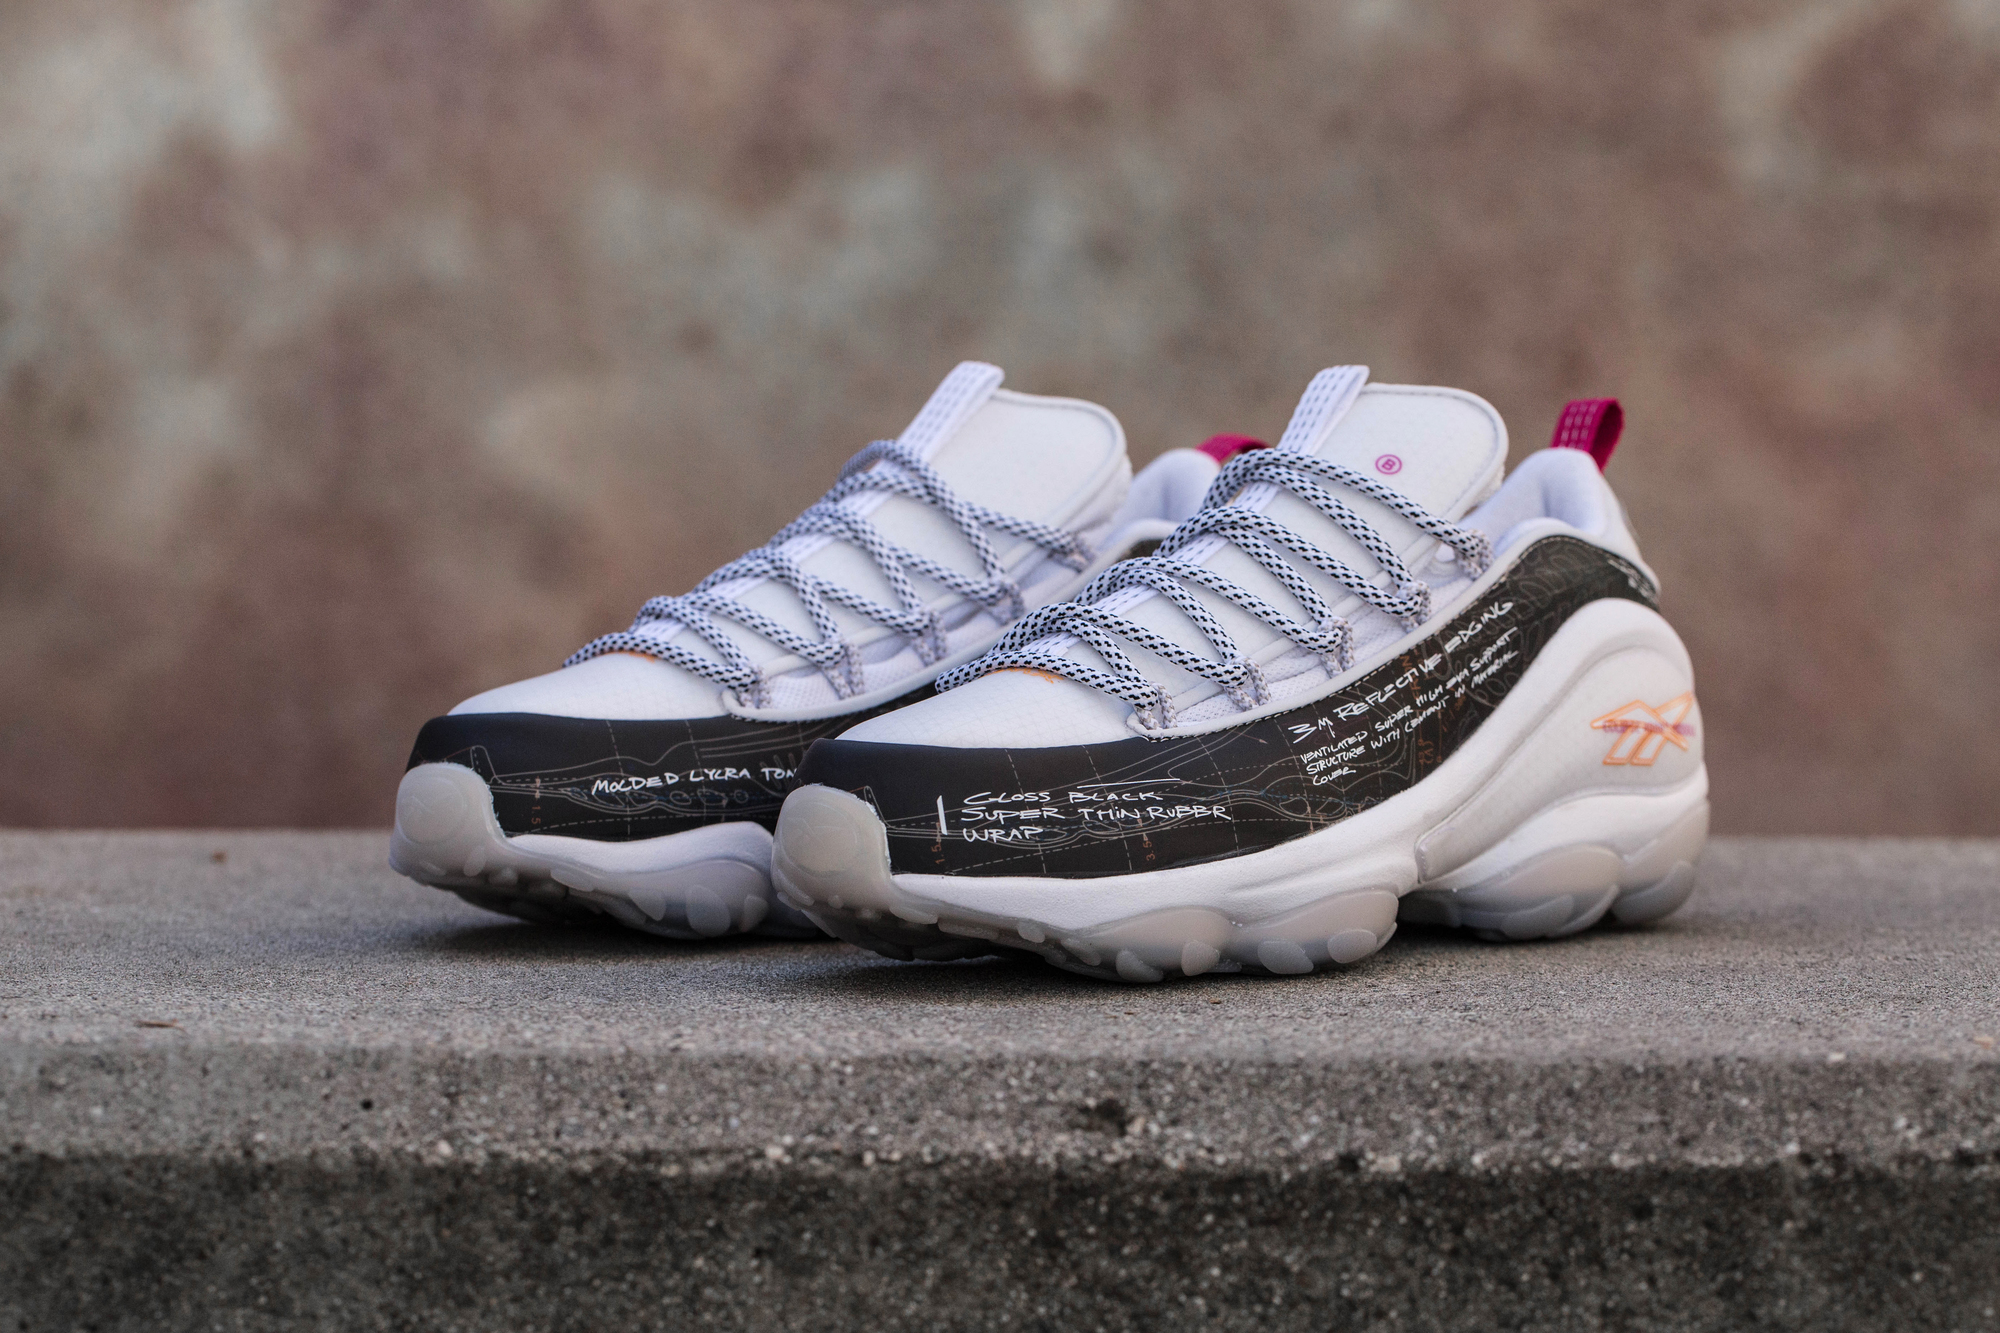 BAIT Reebok DMX Run 10 ideation department